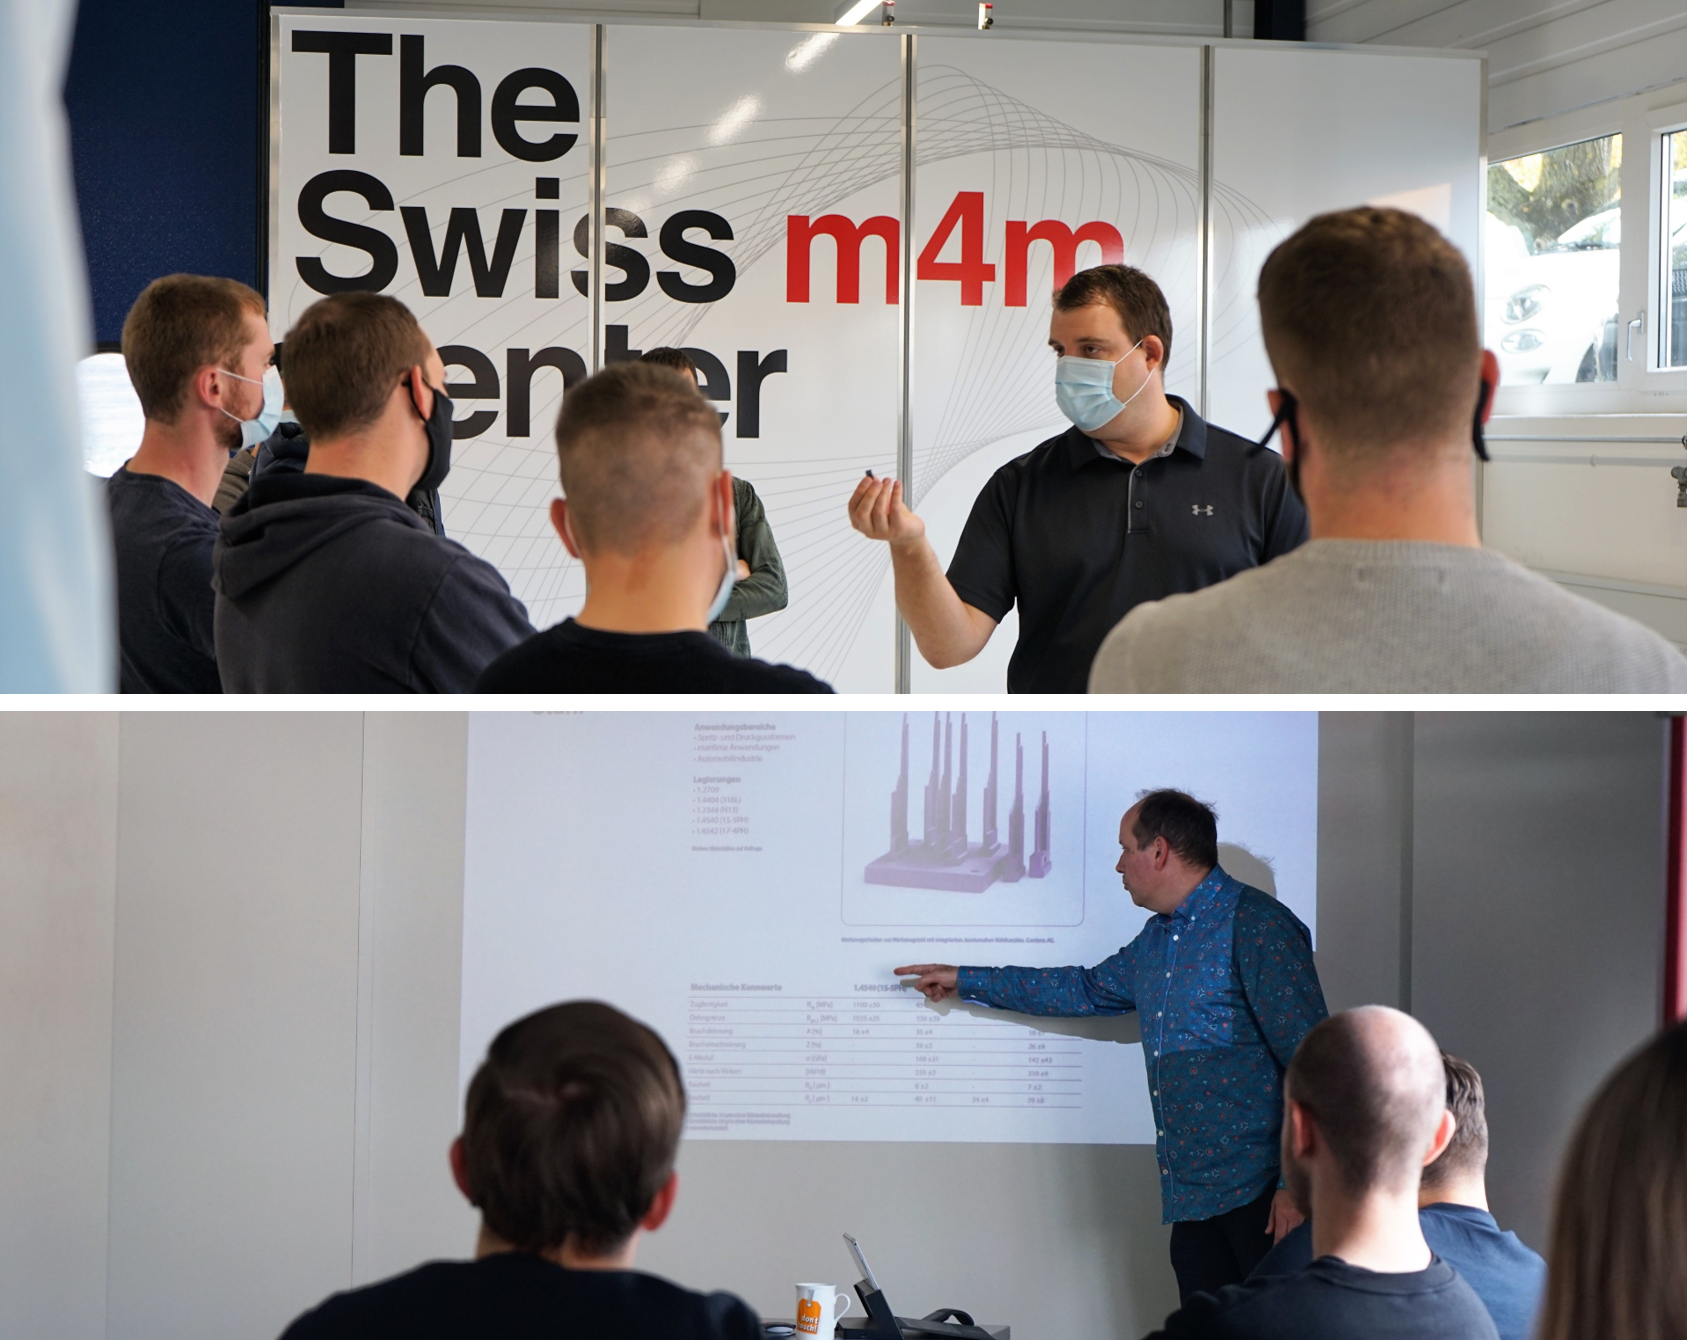 Training at the Swiss m4m Center